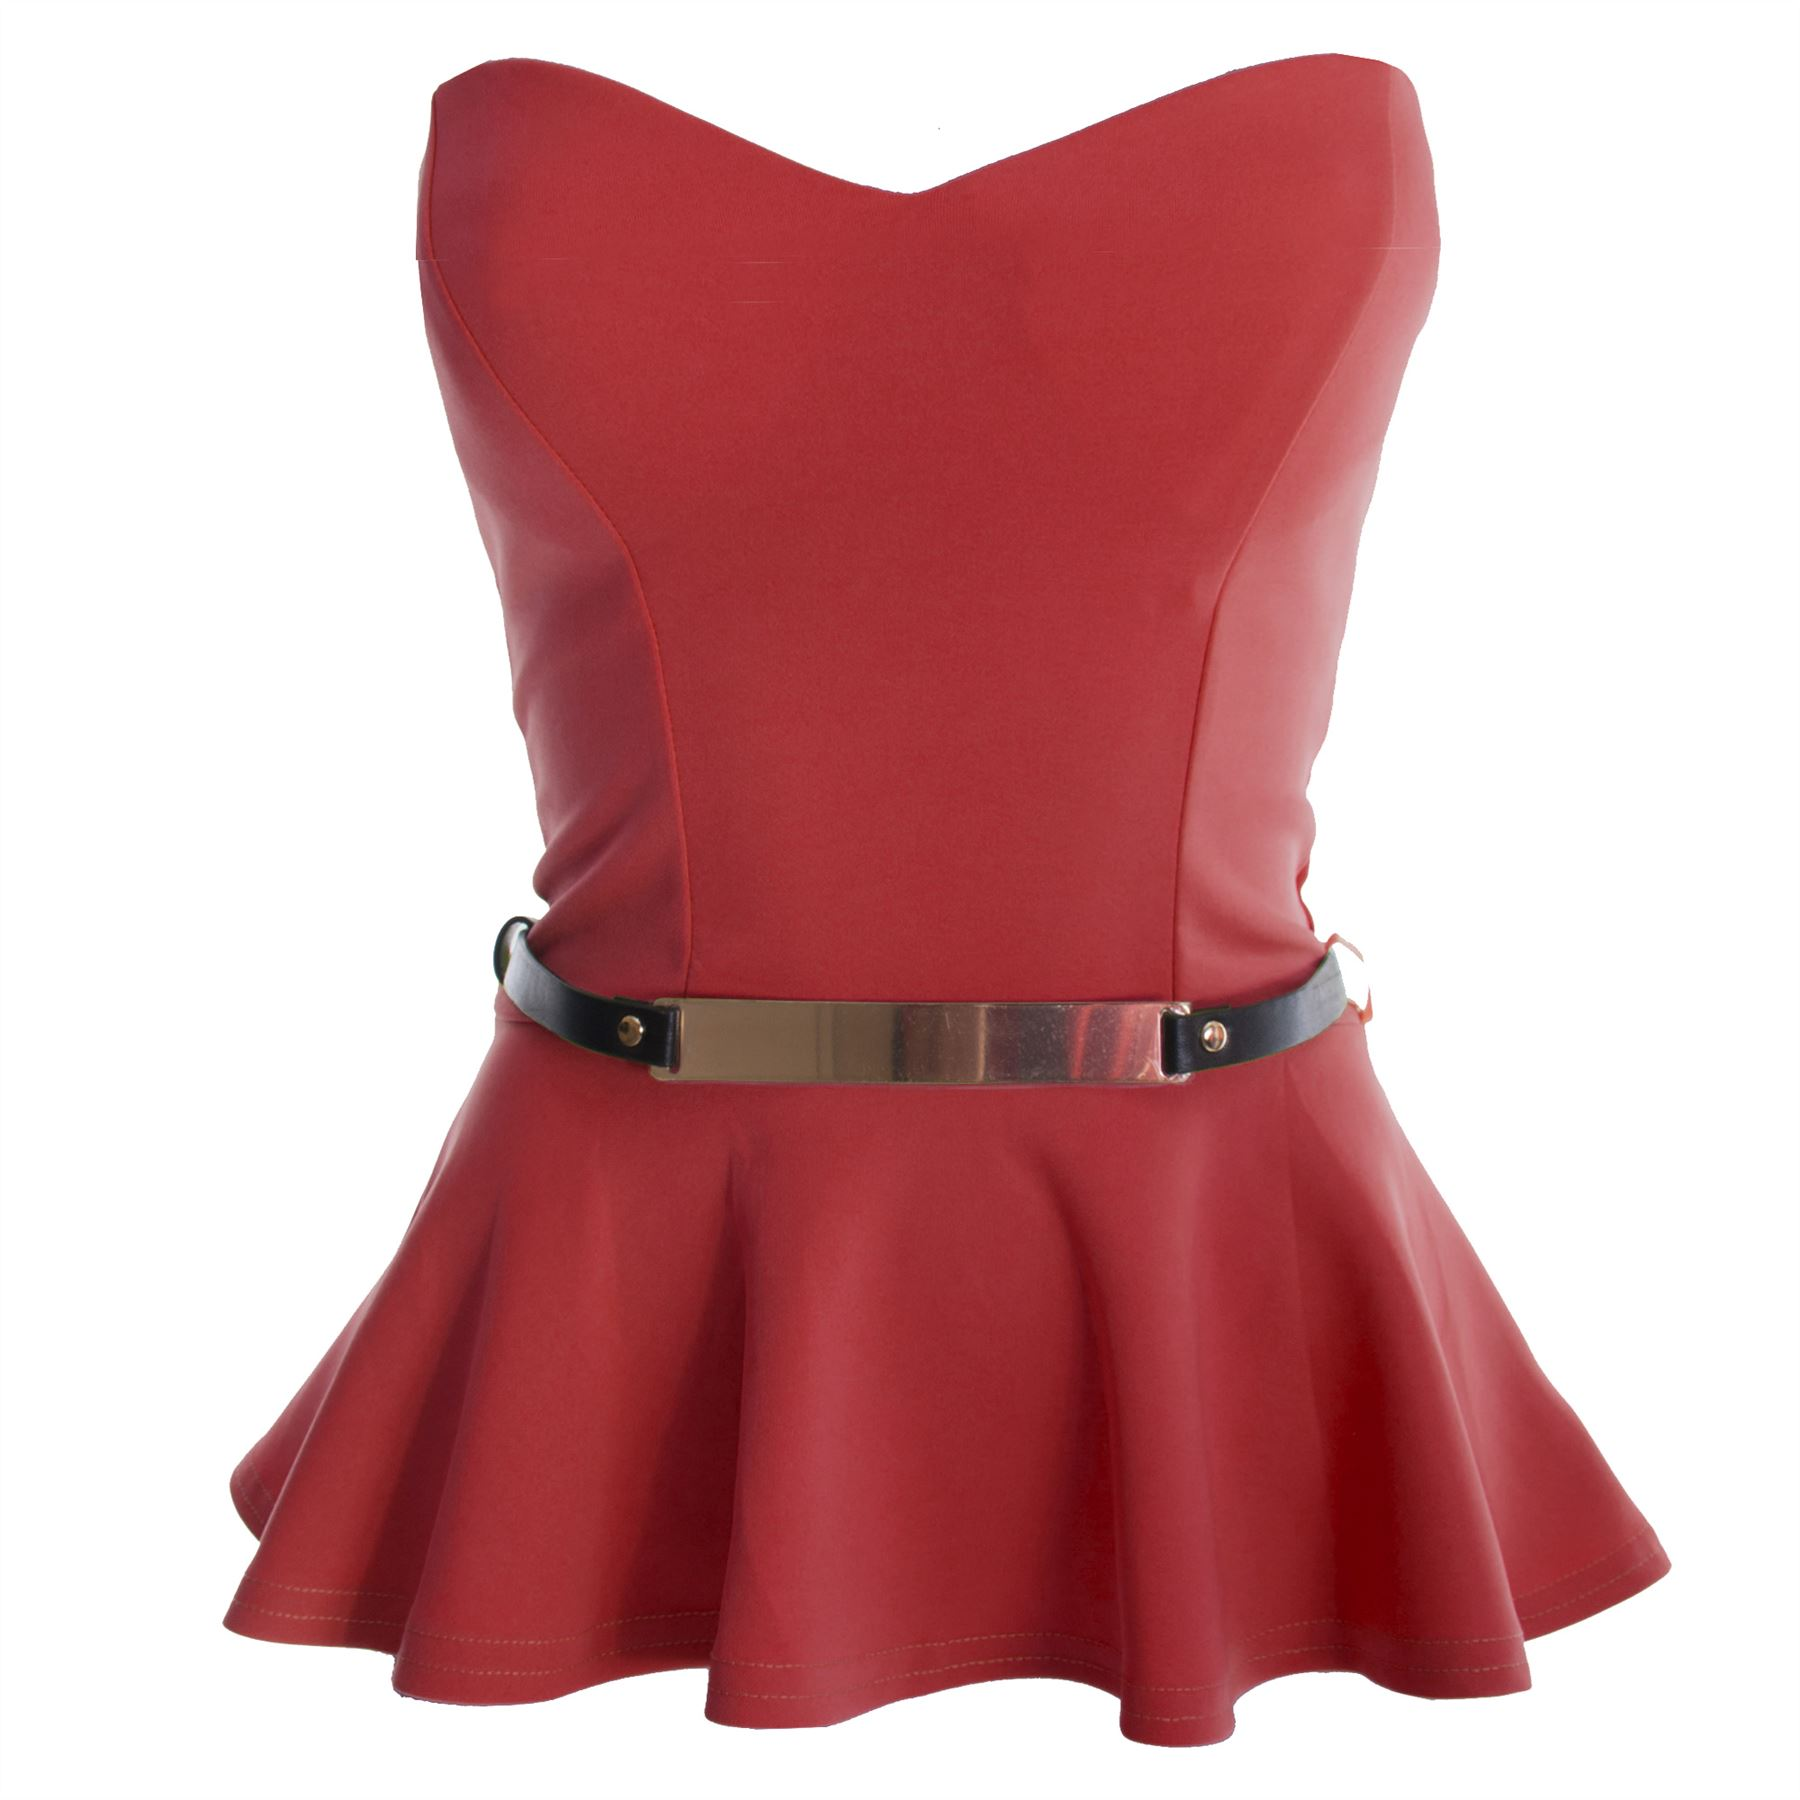 Find great deals on eBay for womens peplum tops. Shop with confidence.